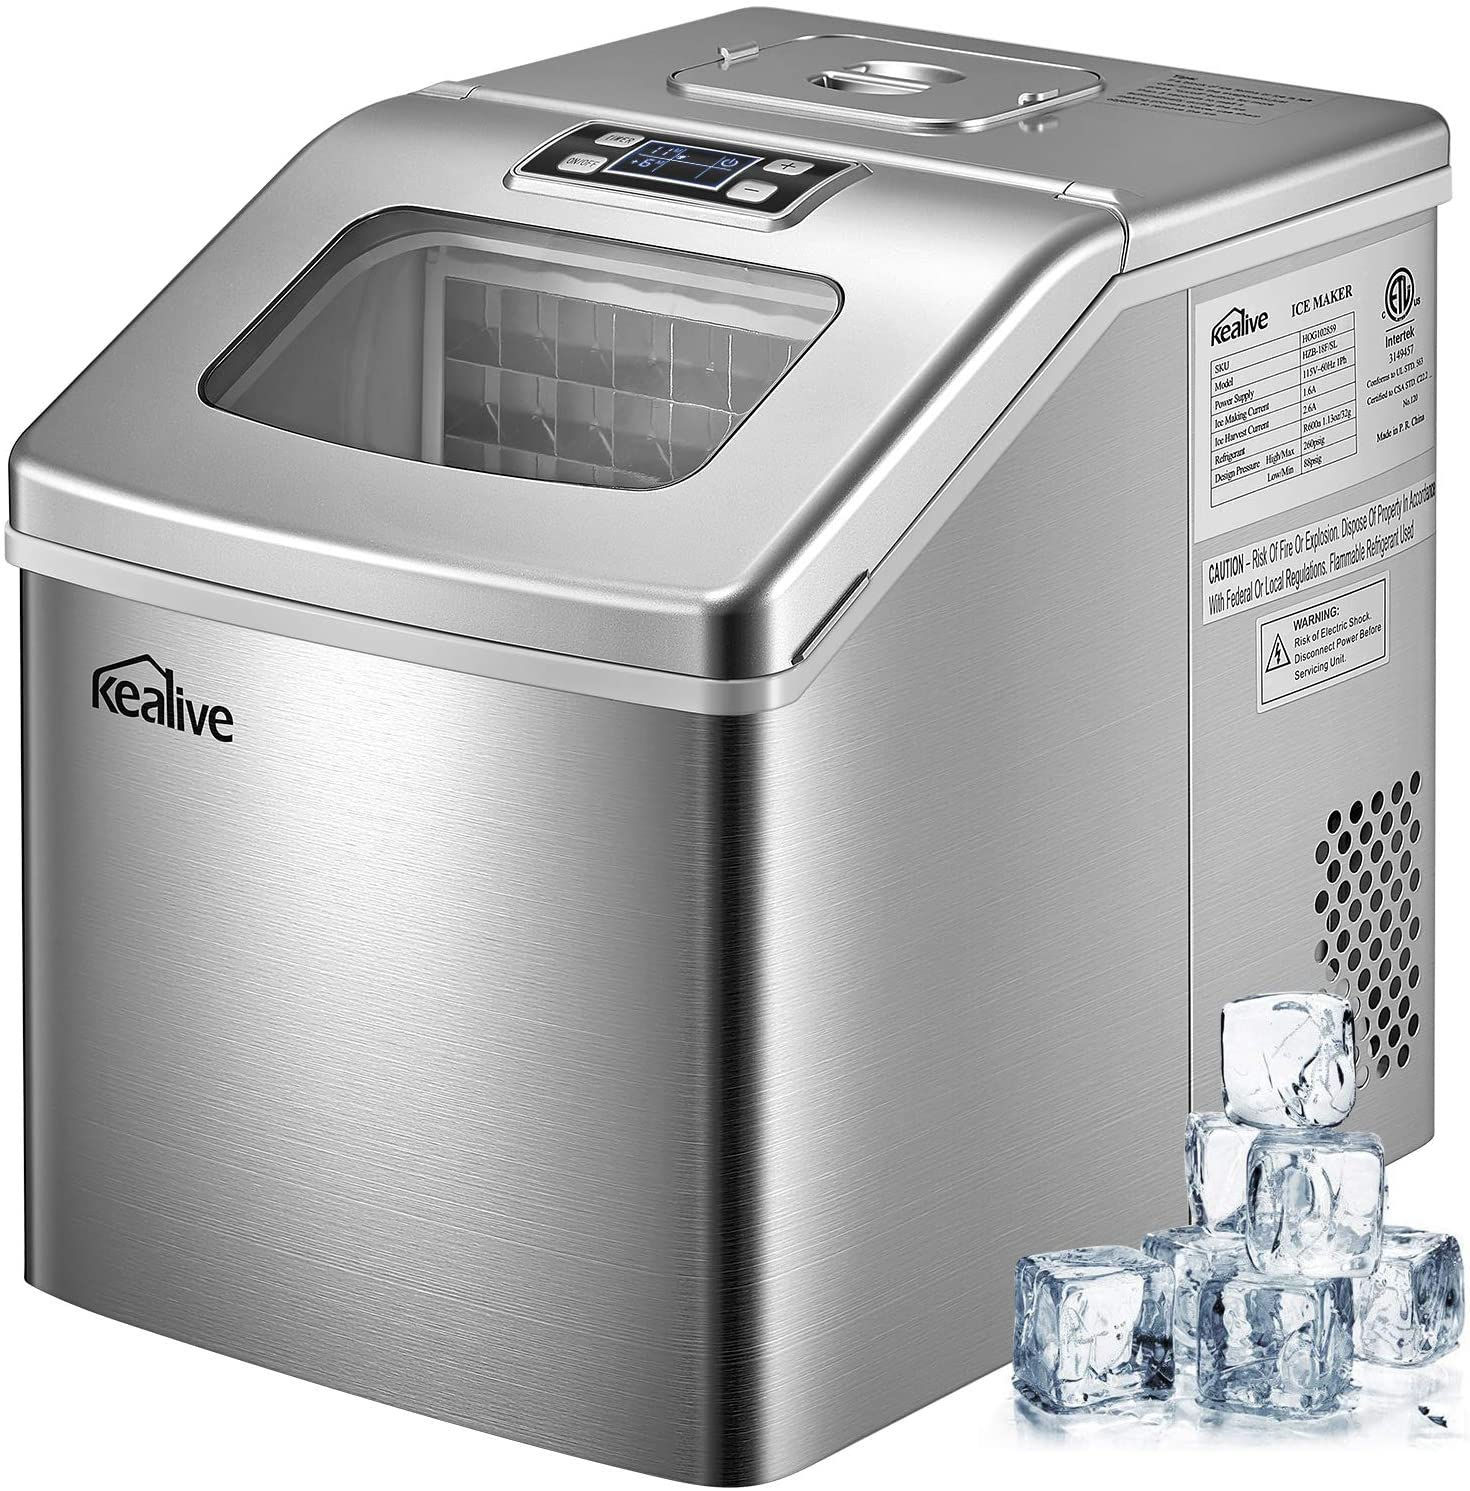 Kealive 40lbs/24H Countertop Ice Maker Review